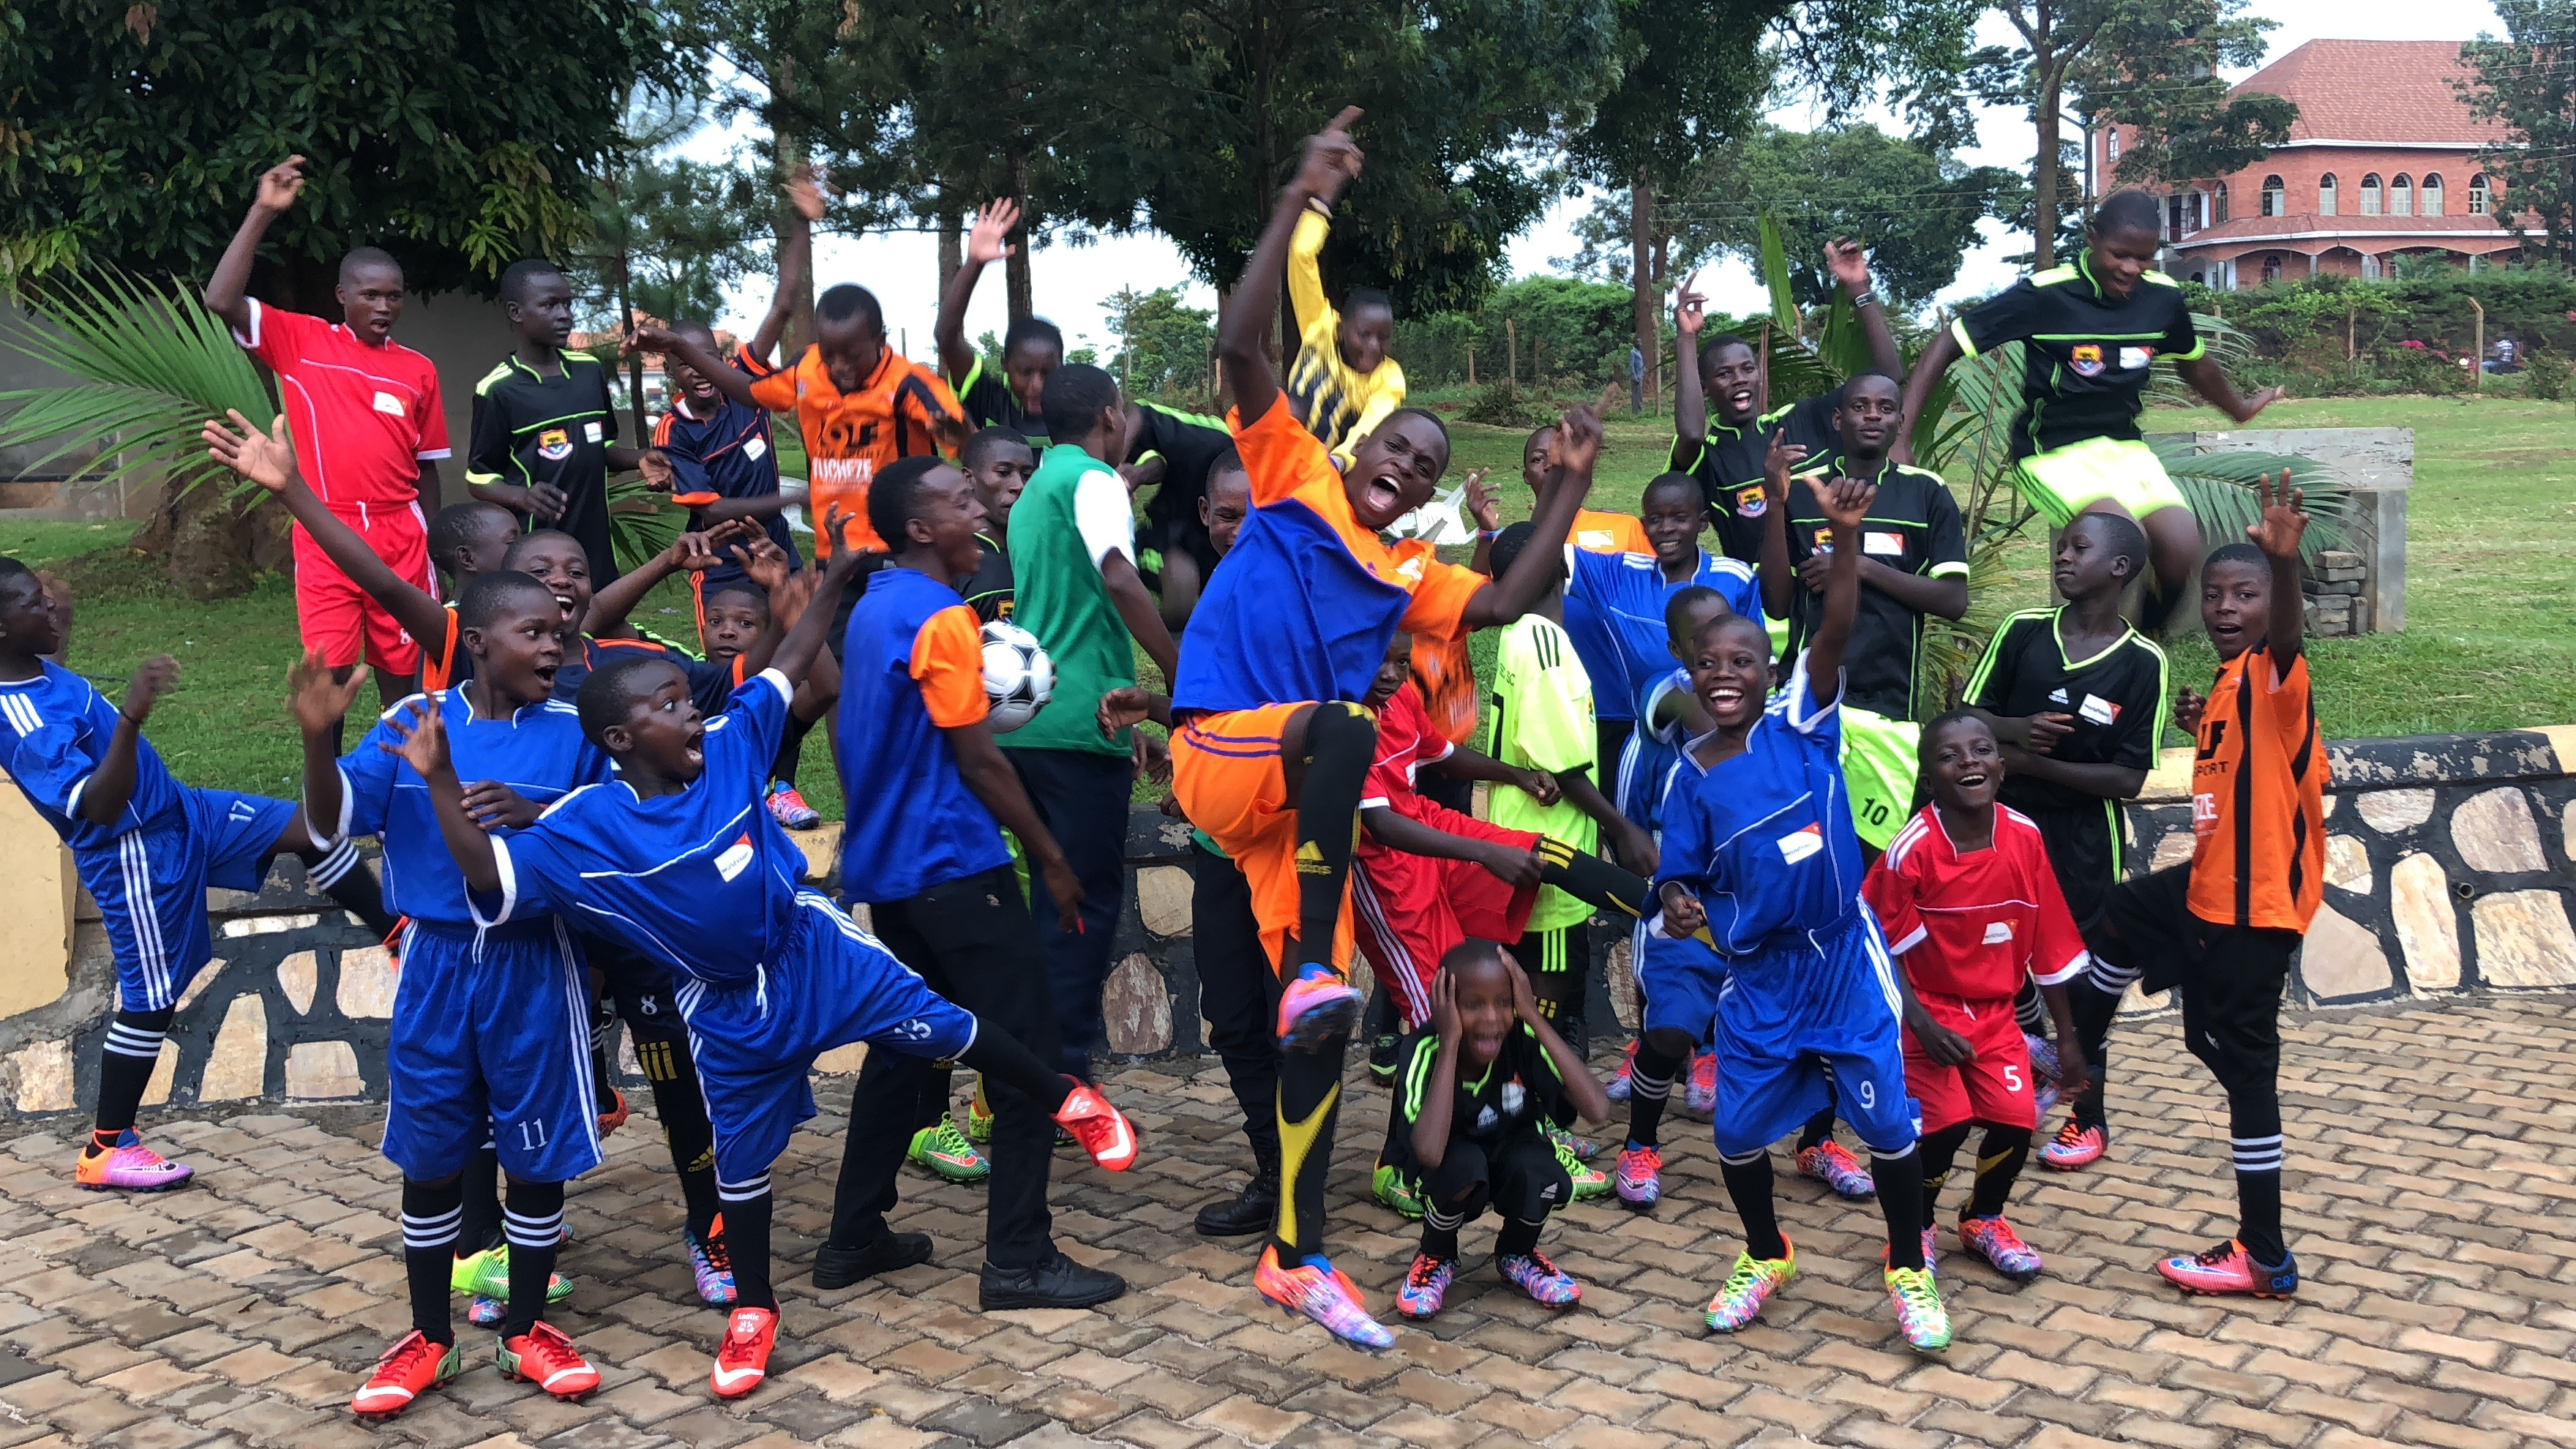 INSPIRE-ing an end to violence against children in Uganda